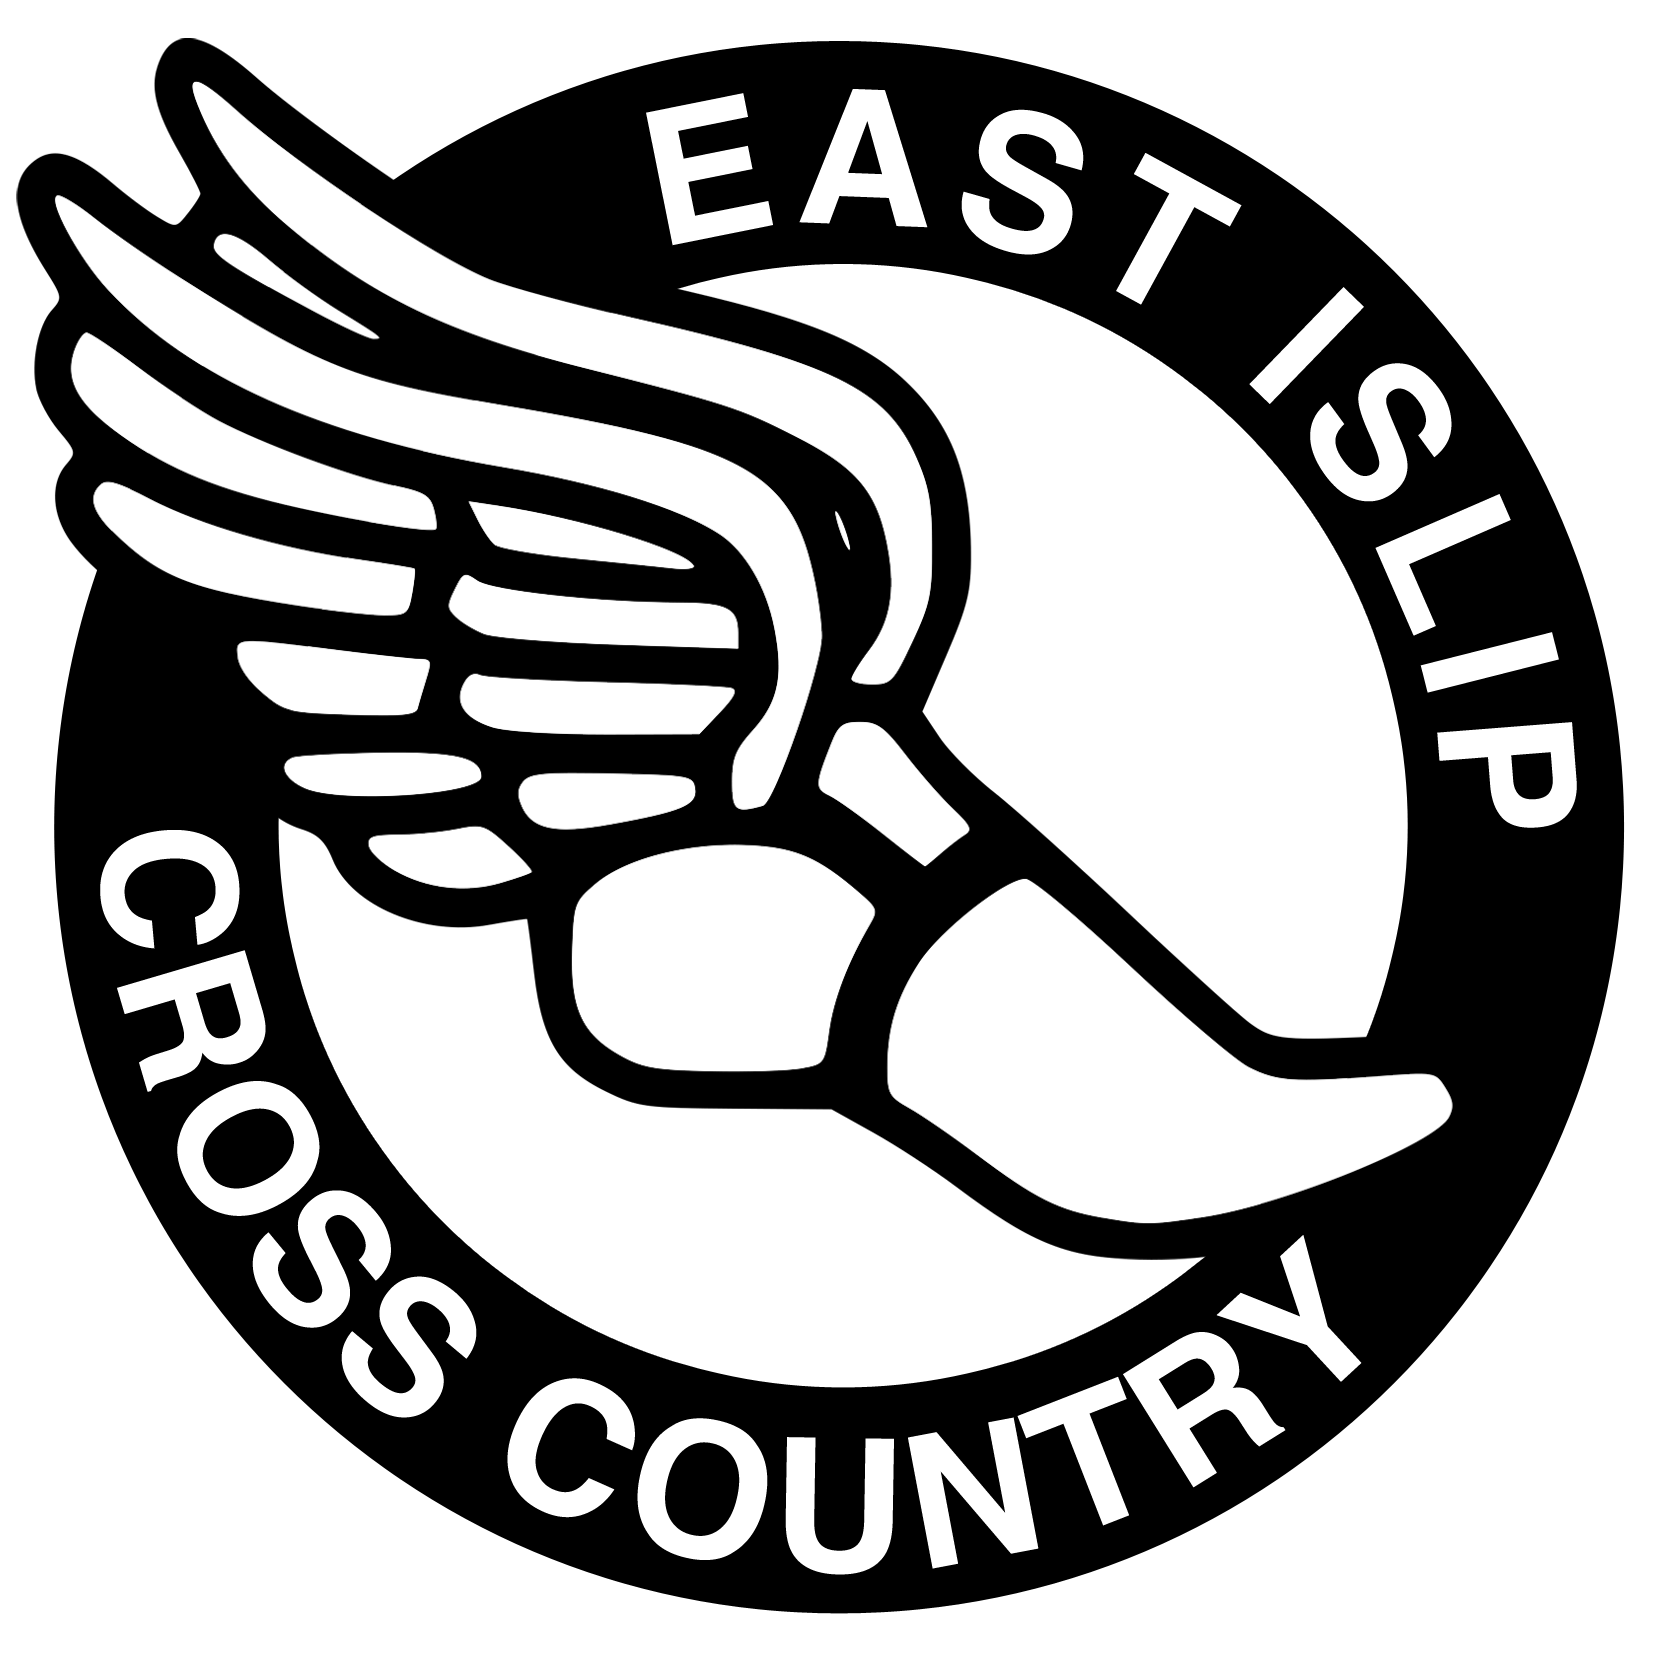 Cross country png. Running symbol free download